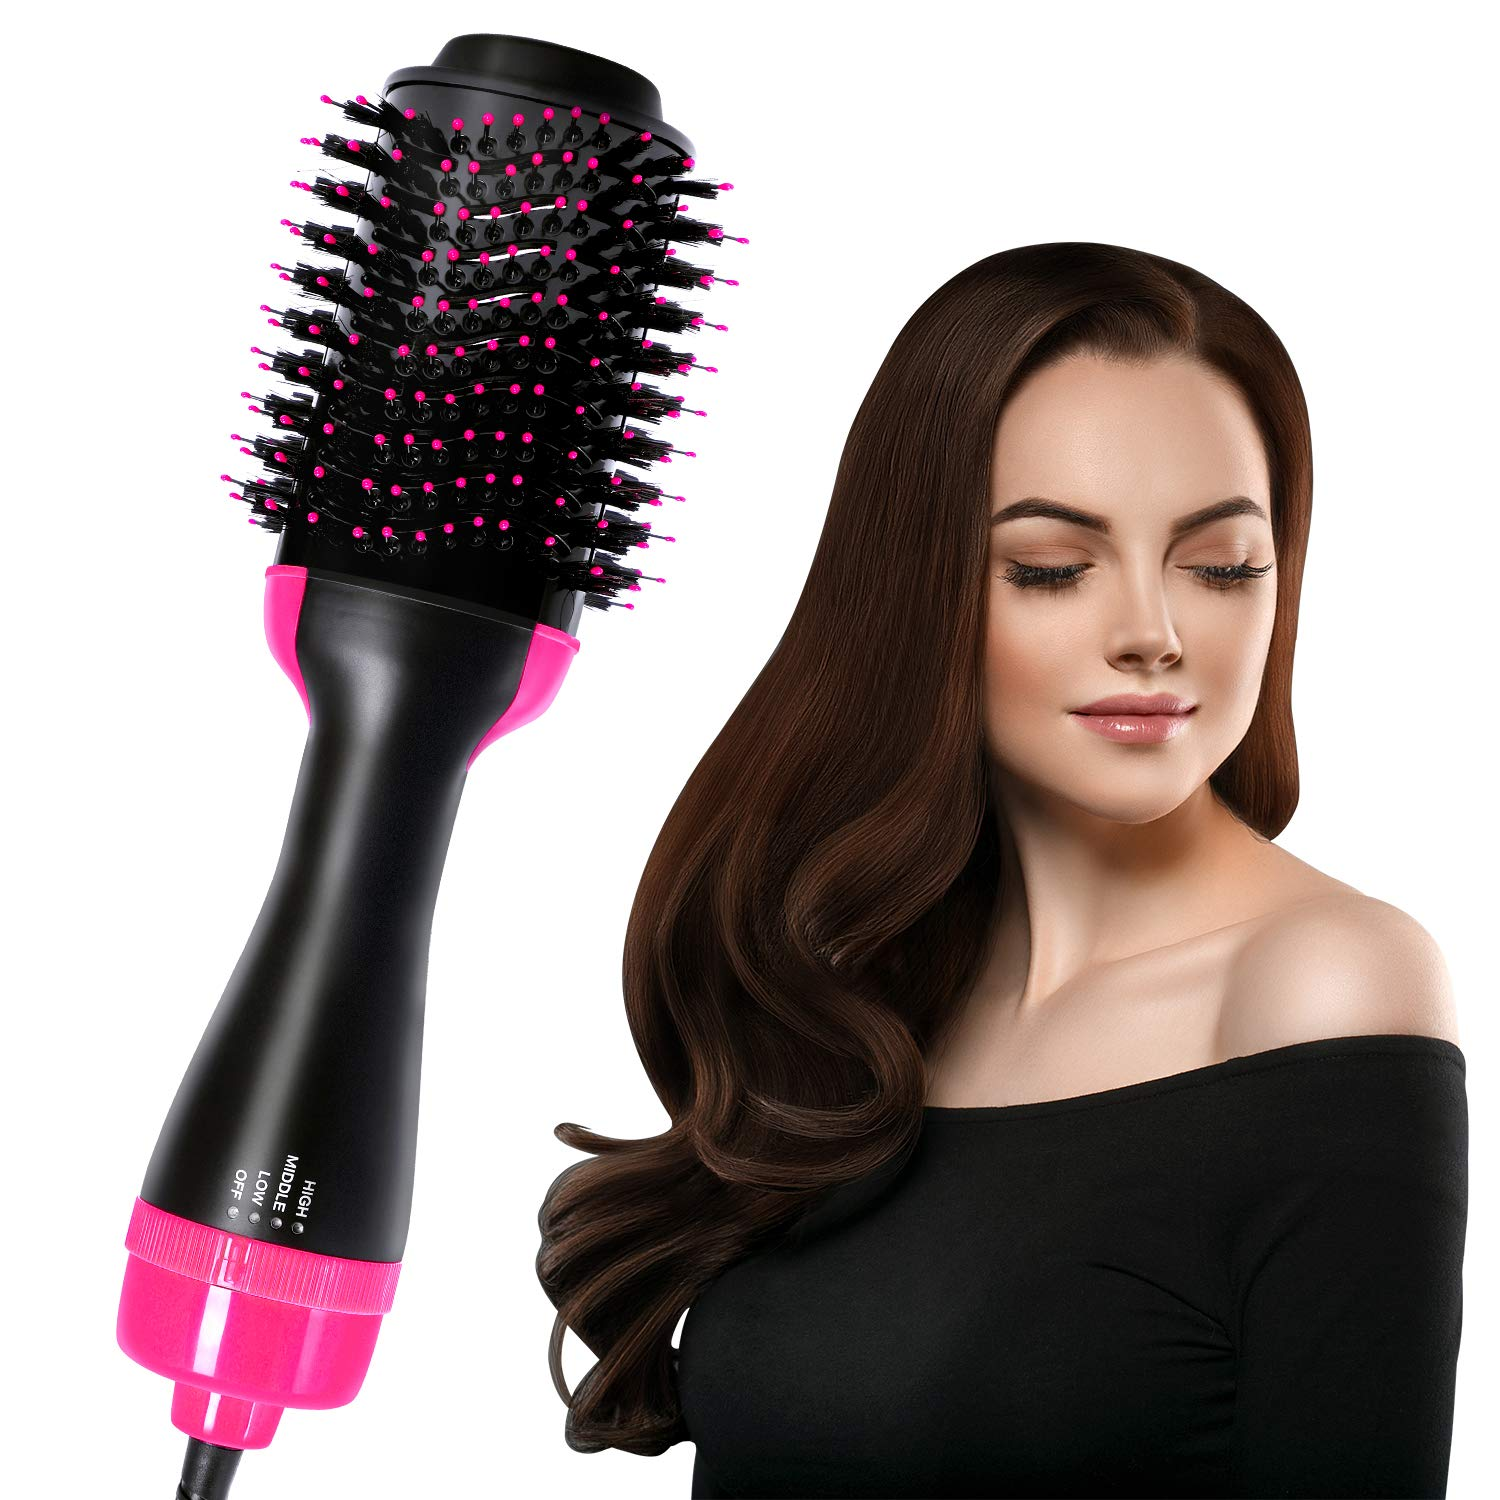 Hot Air Brush, Mirror Eleanos One-Step Hair Dryer, 3-in-1 Hair Dryer Brush for Straightening and Curling